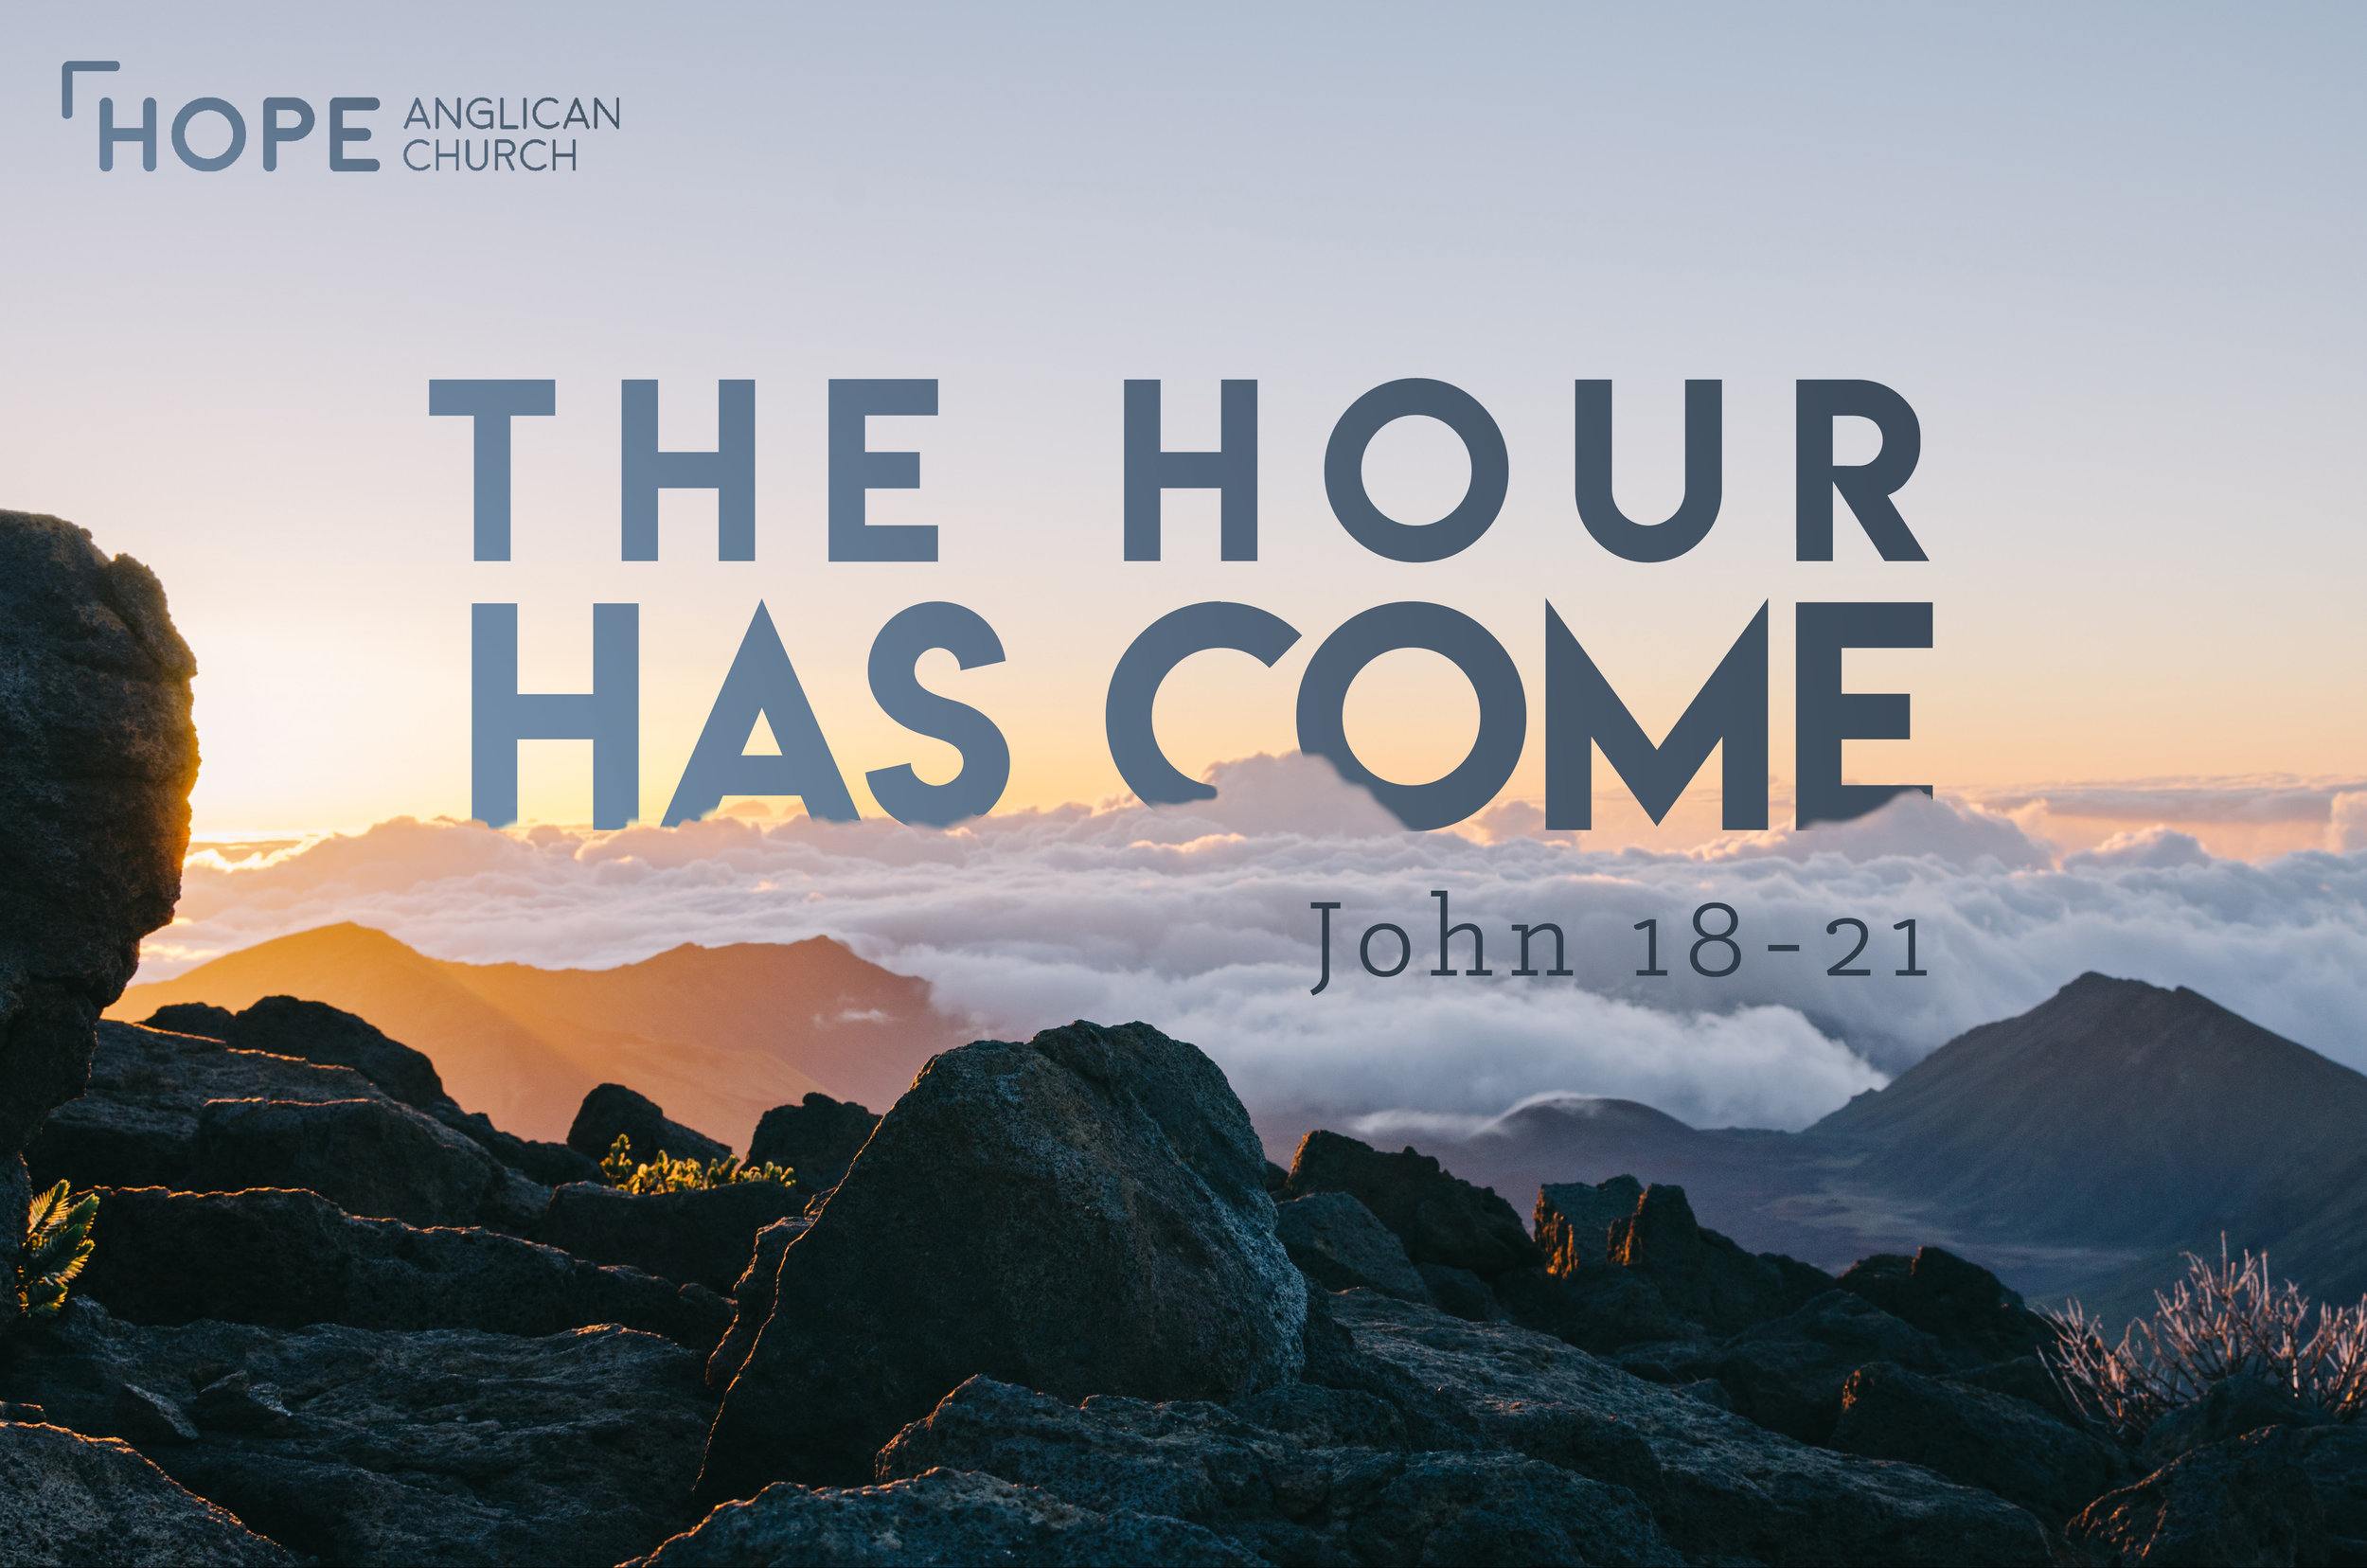 John 18-21 The Hour Has Come_flat.jpg